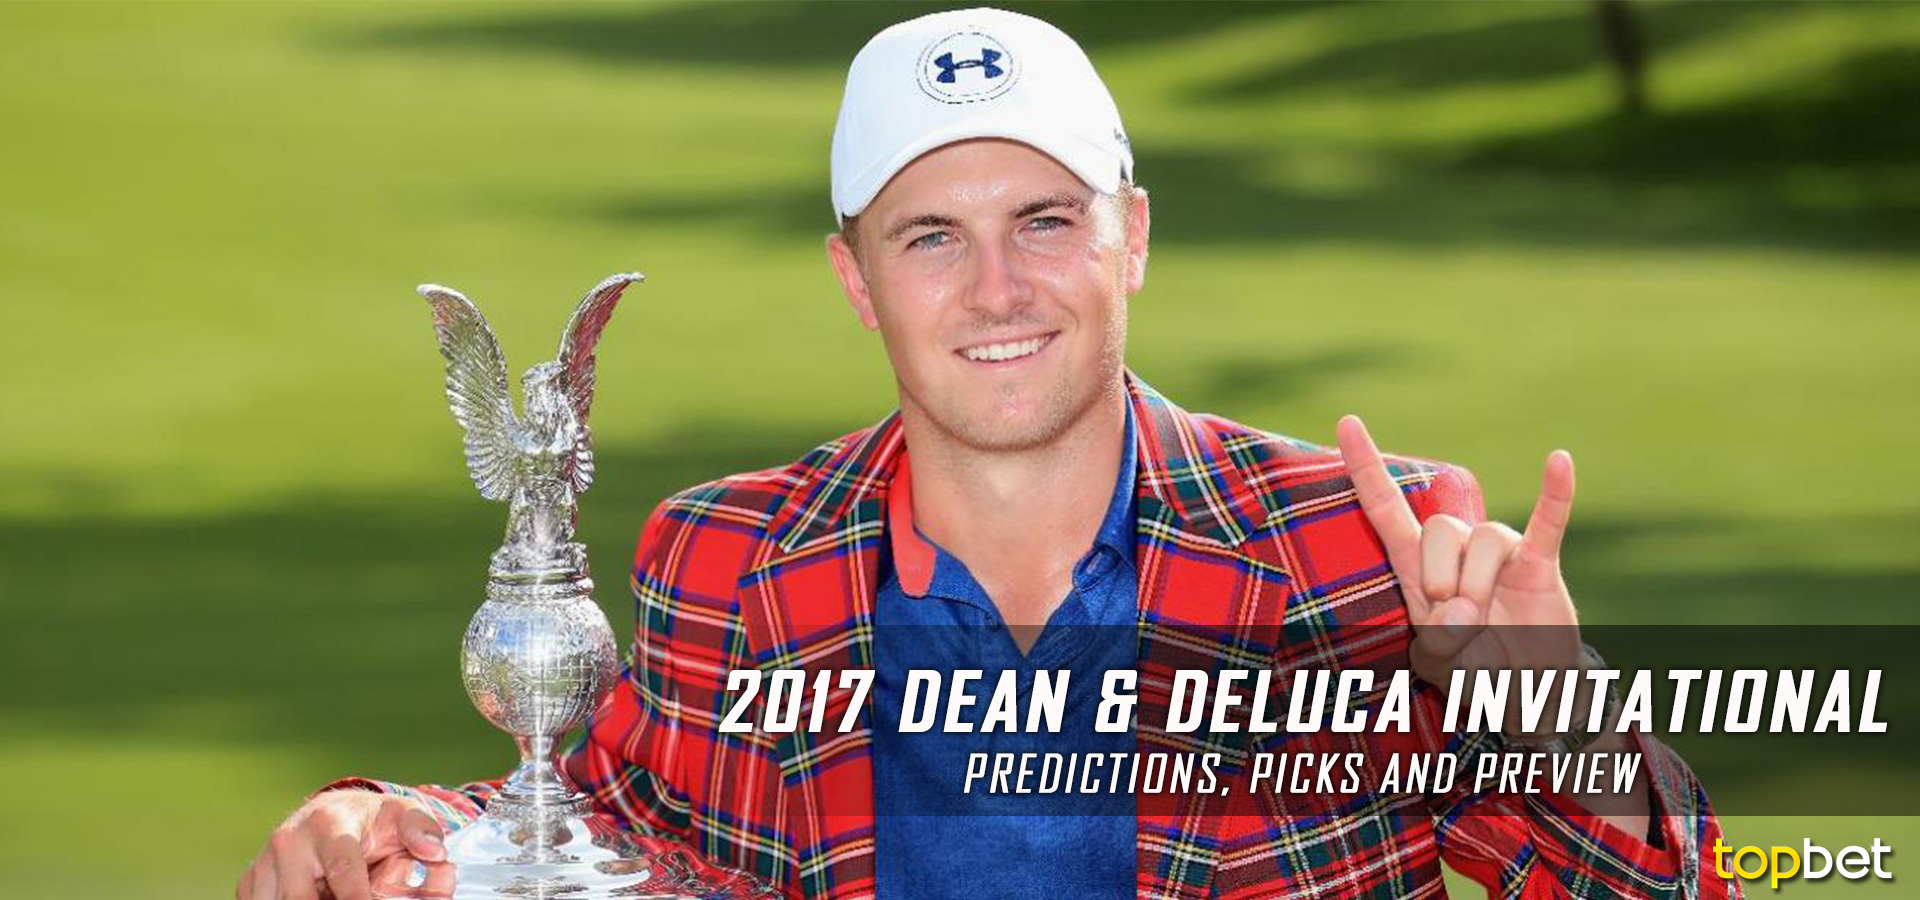 2017 Dean & DeLuca Invitational Predictions, Picks, Odds and PGA Betting Preview